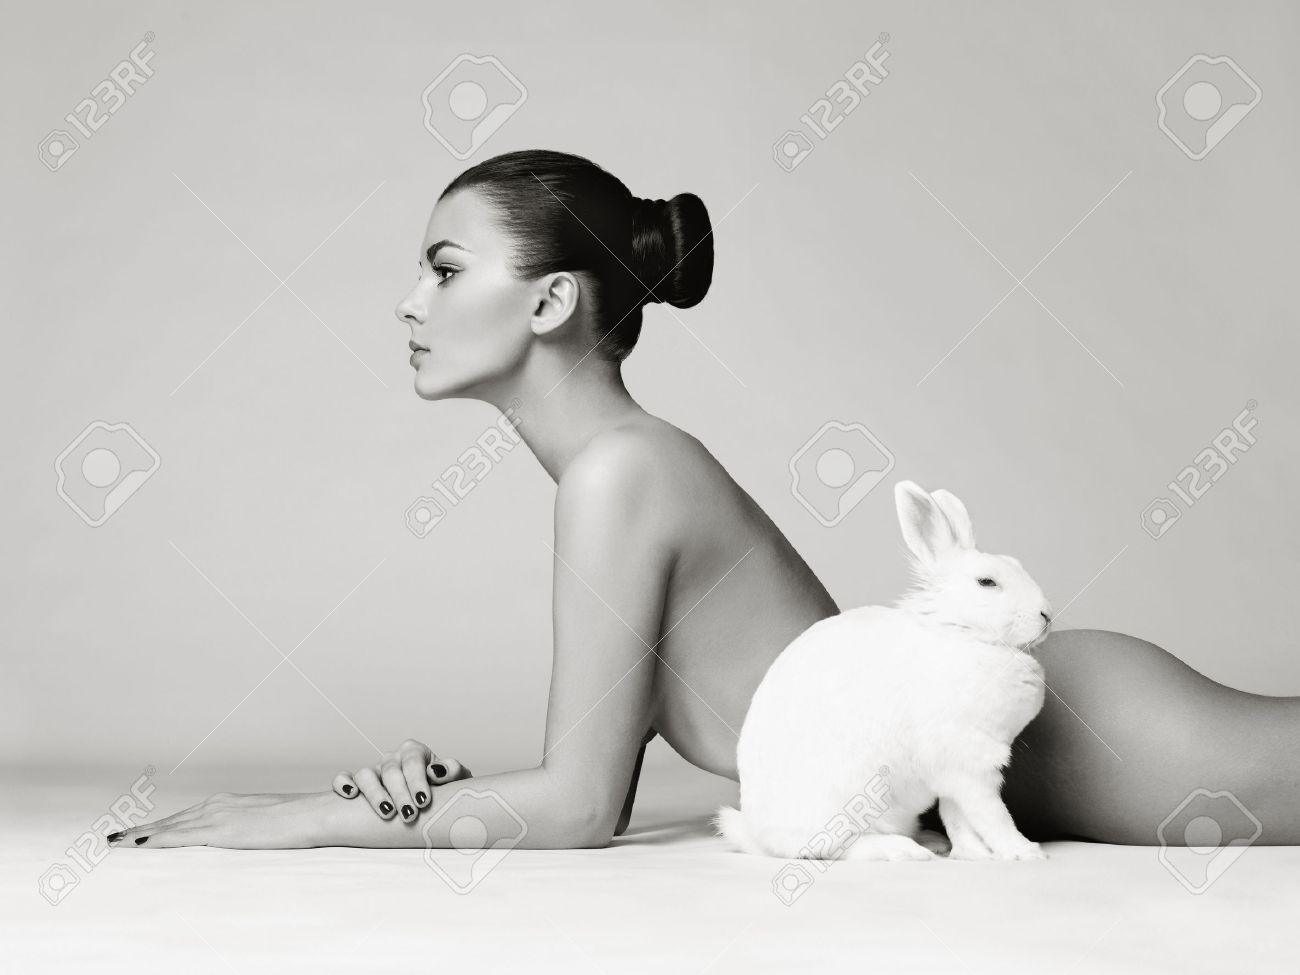 woman photograph of naked